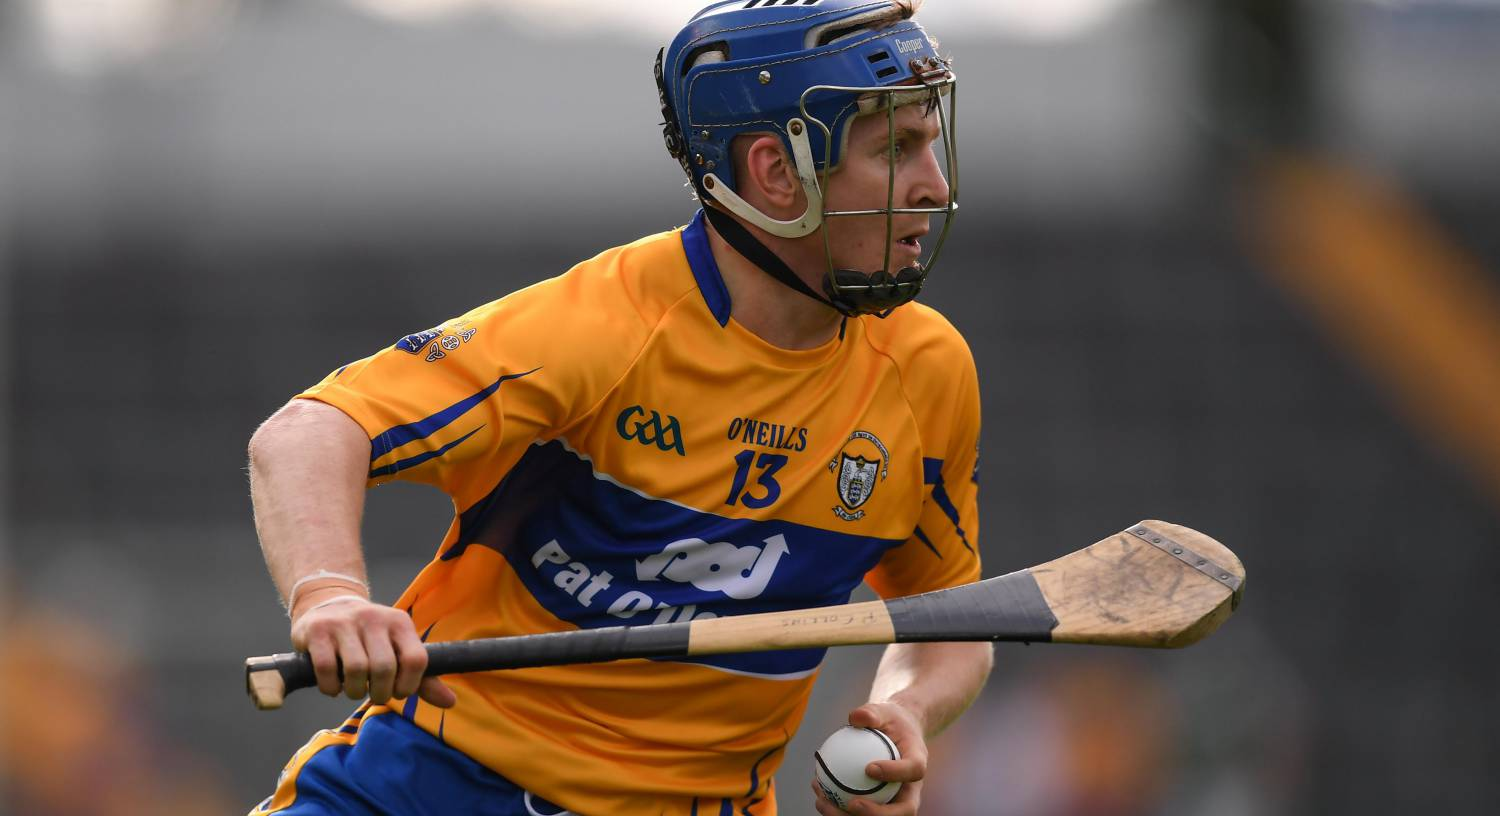 Hurling Hands: Podge Collins - 'The other lads were celebrating my goal, but I was devastated'